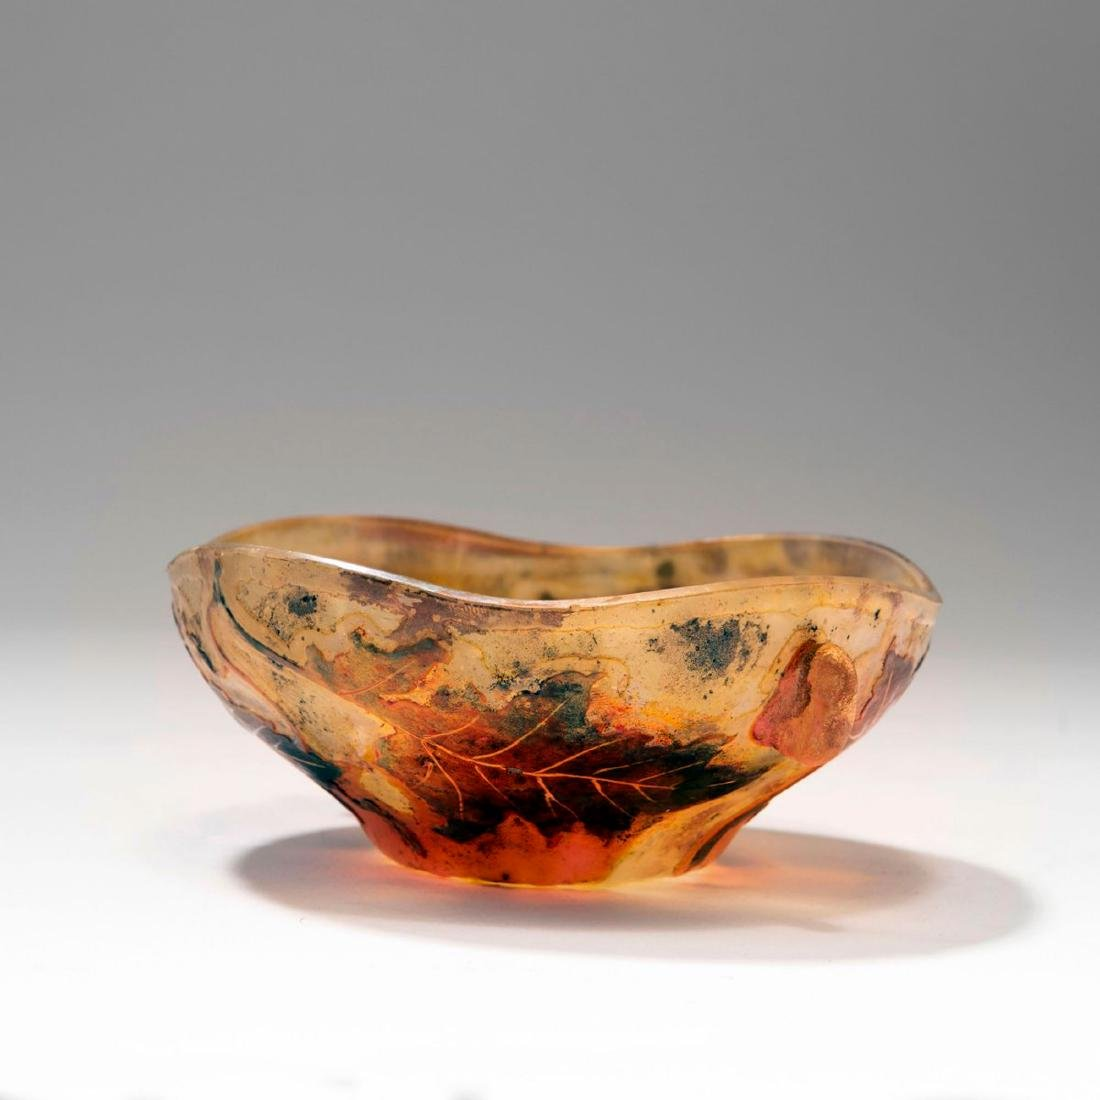 Chene et scarabee' bowl with handles, 1900-10 - 2